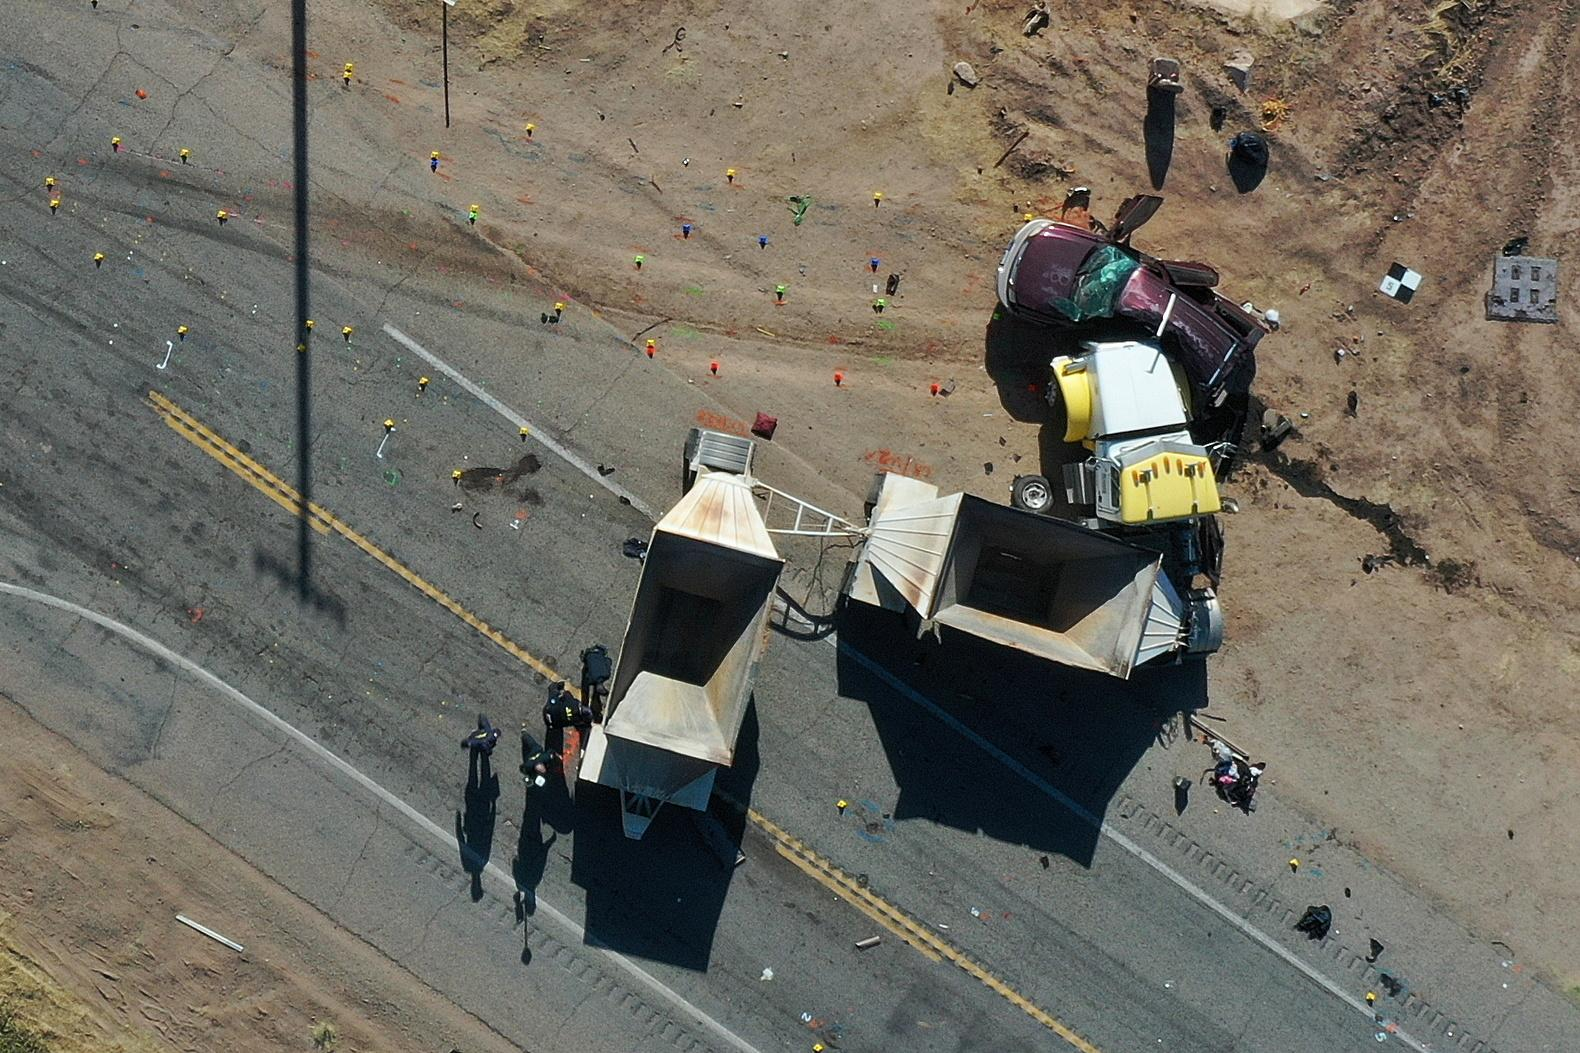 California Highway Patrol (CHP) officers investigate a crash site after a collision between a Ford Expedition sport utility vehicle (SUV) and a tractor-trailer truck near Holtville, California, U.S. in an aerial photograph March 2, 2021.  Photo: Reuters